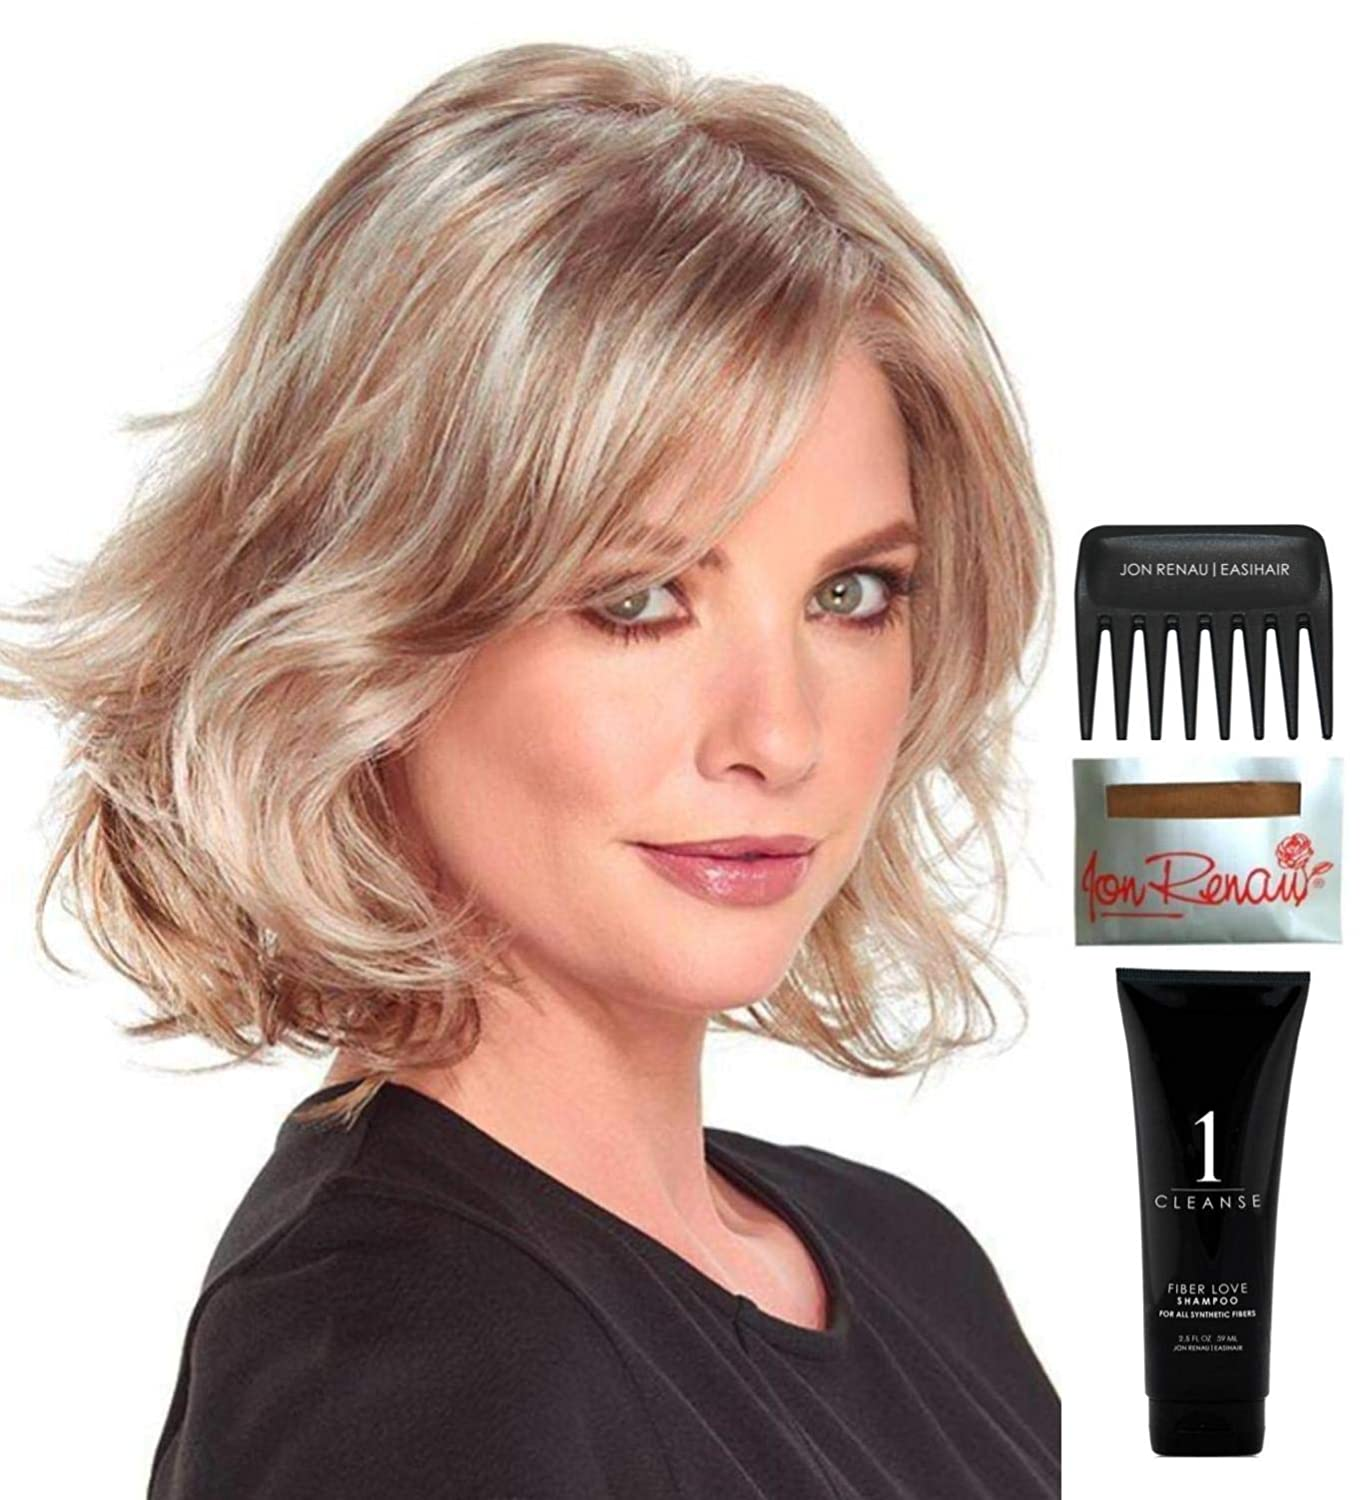 Bundle - 5 Items: Felicity Wig by Jon Renau, Christy's Wigs Q & A Booklet, 2oz Travel Size Wig Shampoo, Wig Cap & Wide Tooth Comb - Color: FS4/33/30A